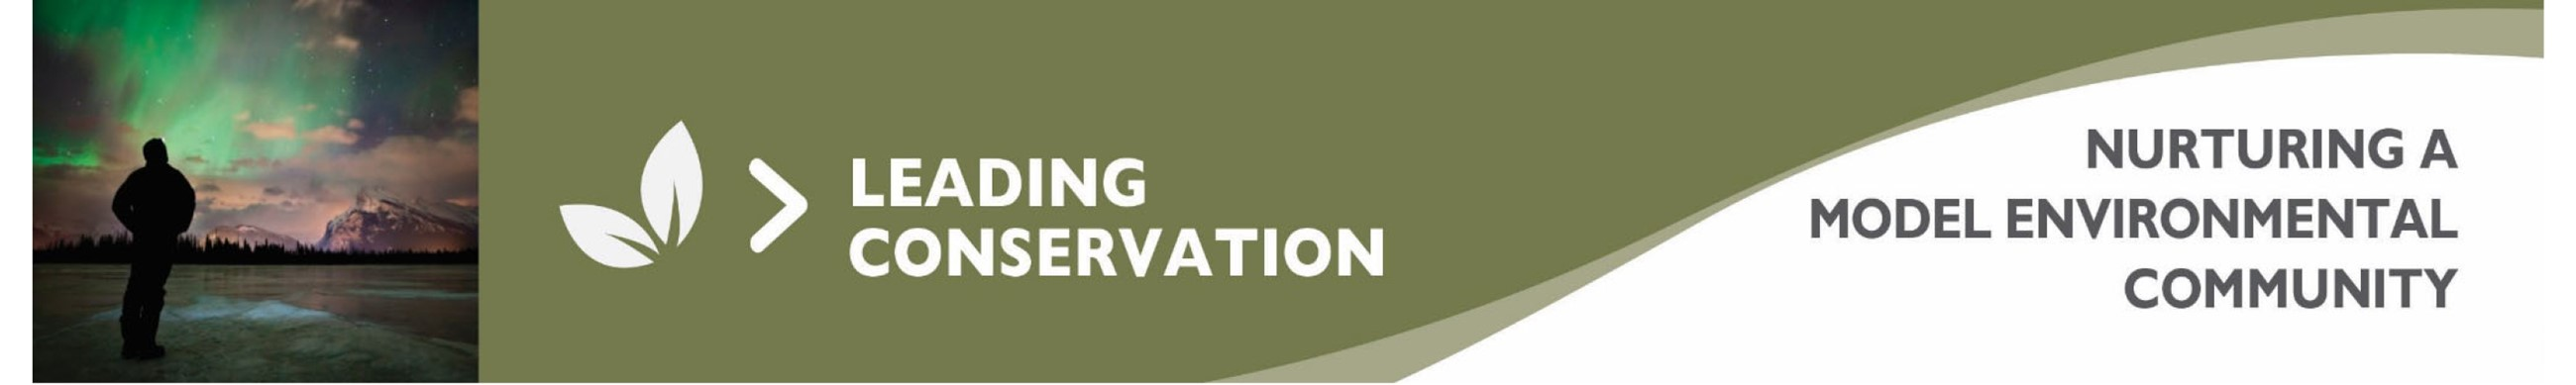 Leading Conservation - Nurturing a Model Environmental Community